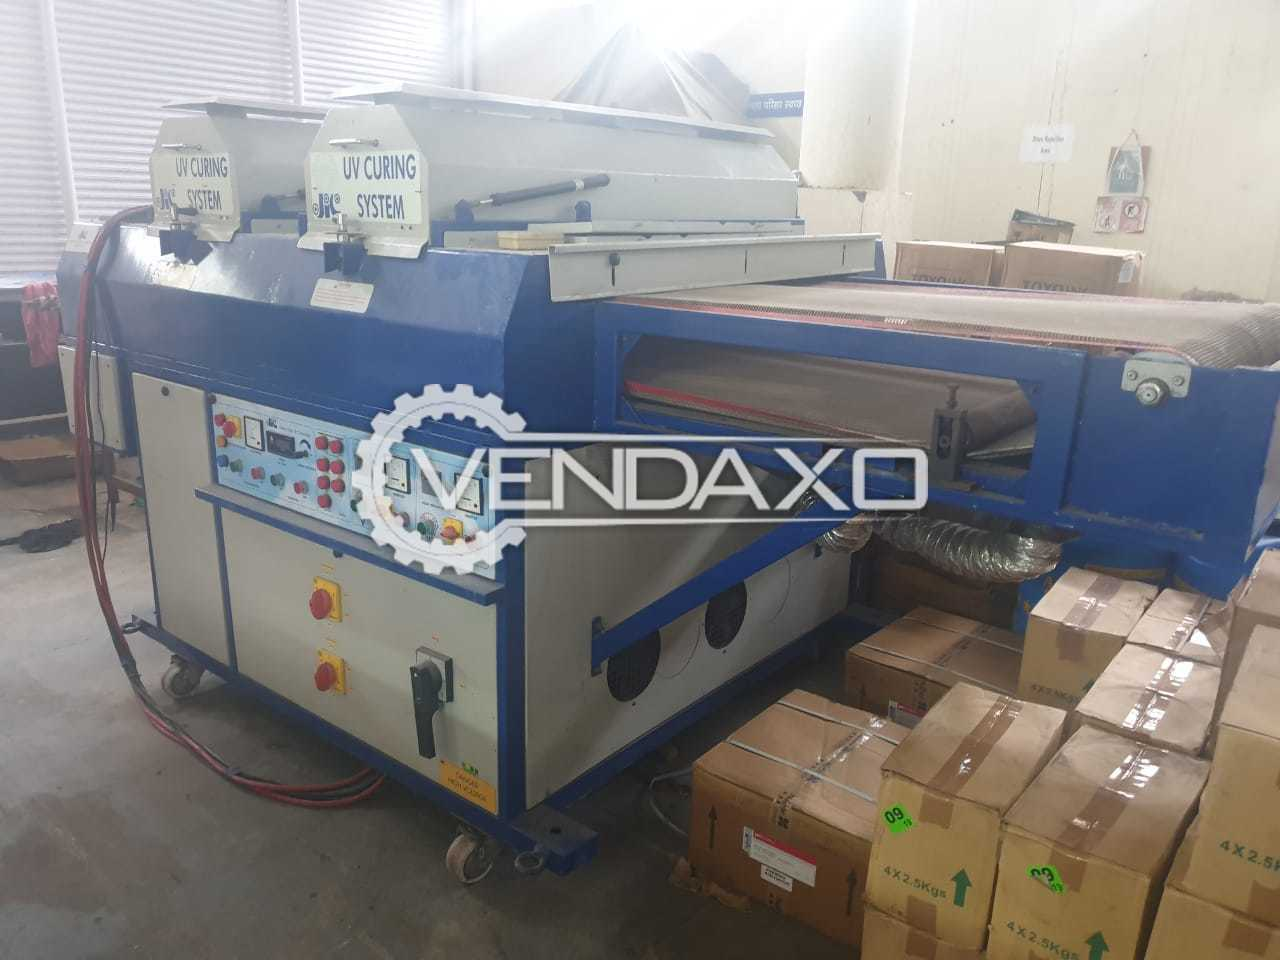 For Sale Used JIC UV Curing System - Size - 40 Inch